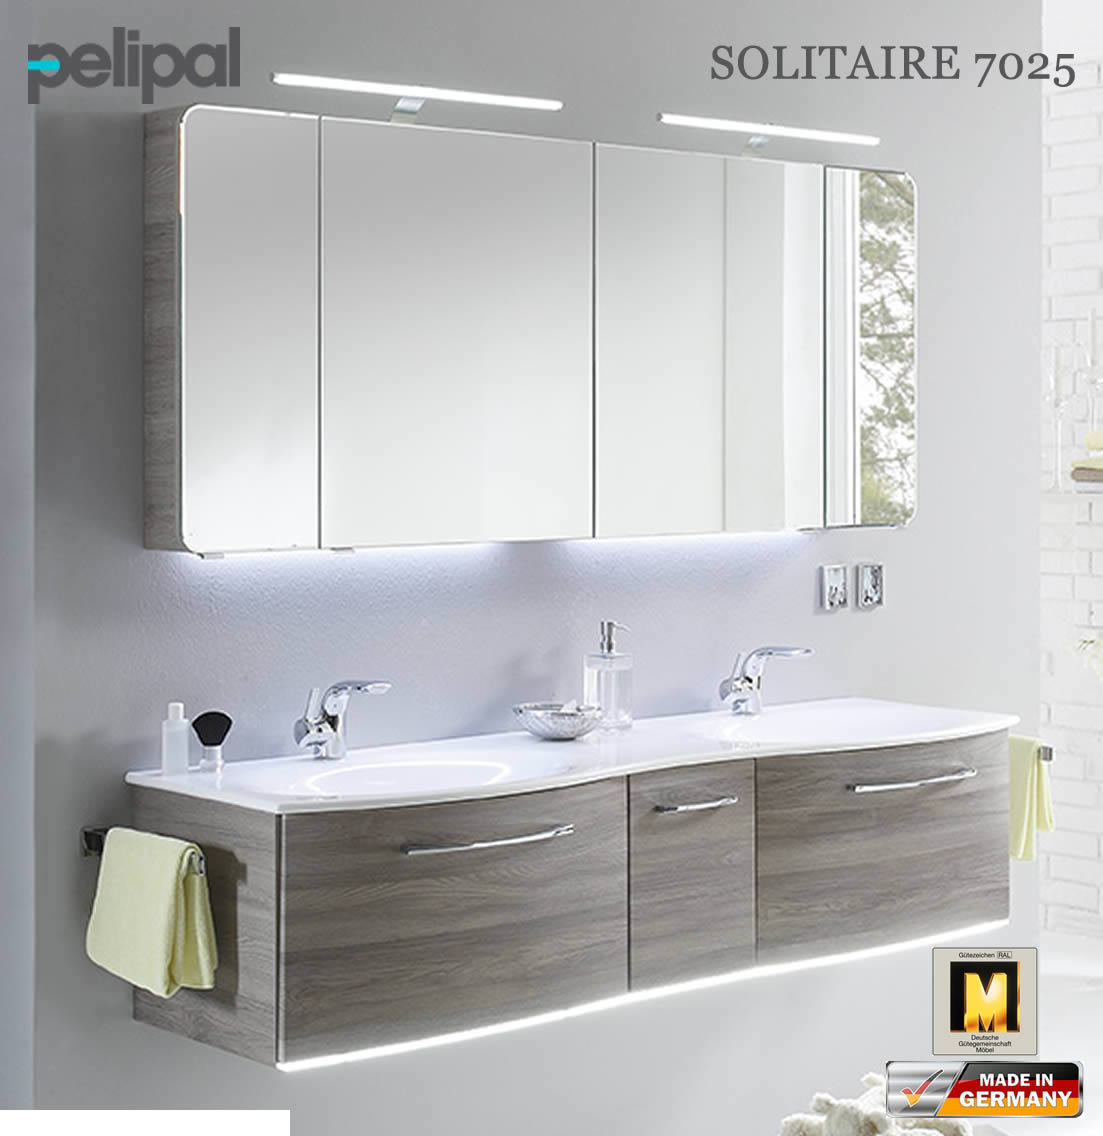 pelipal solitaire 7025 badm bel set mit 1730 mm. Black Bedroom Furniture Sets. Home Design Ideas